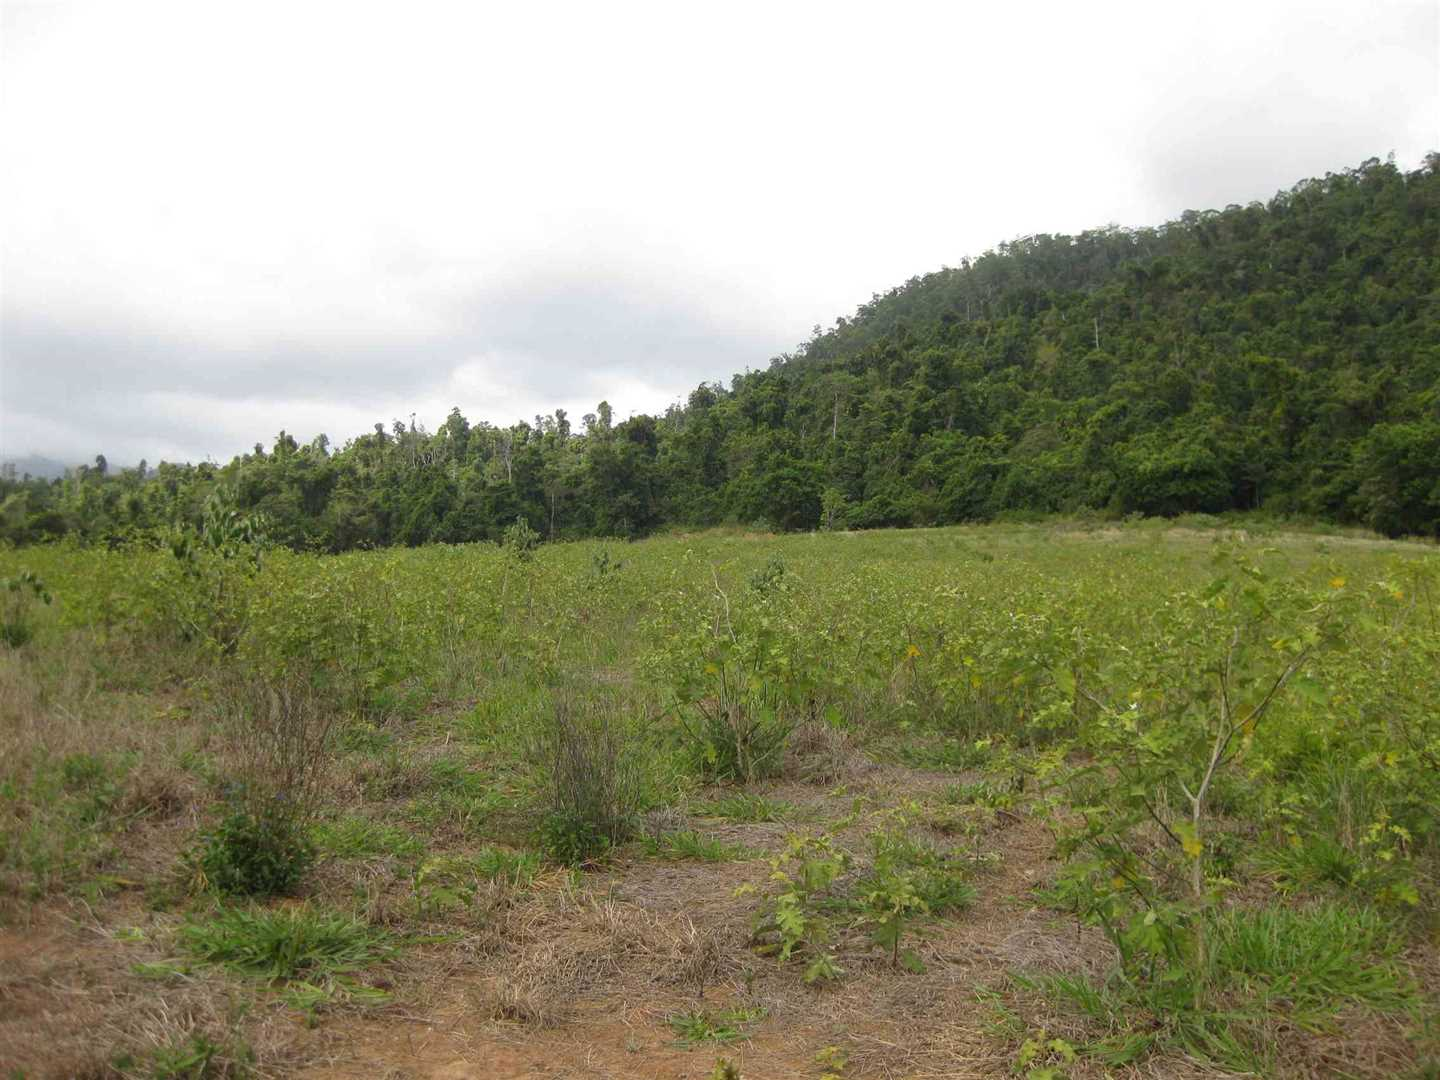 View of part of property showing some cleared undeveloped land